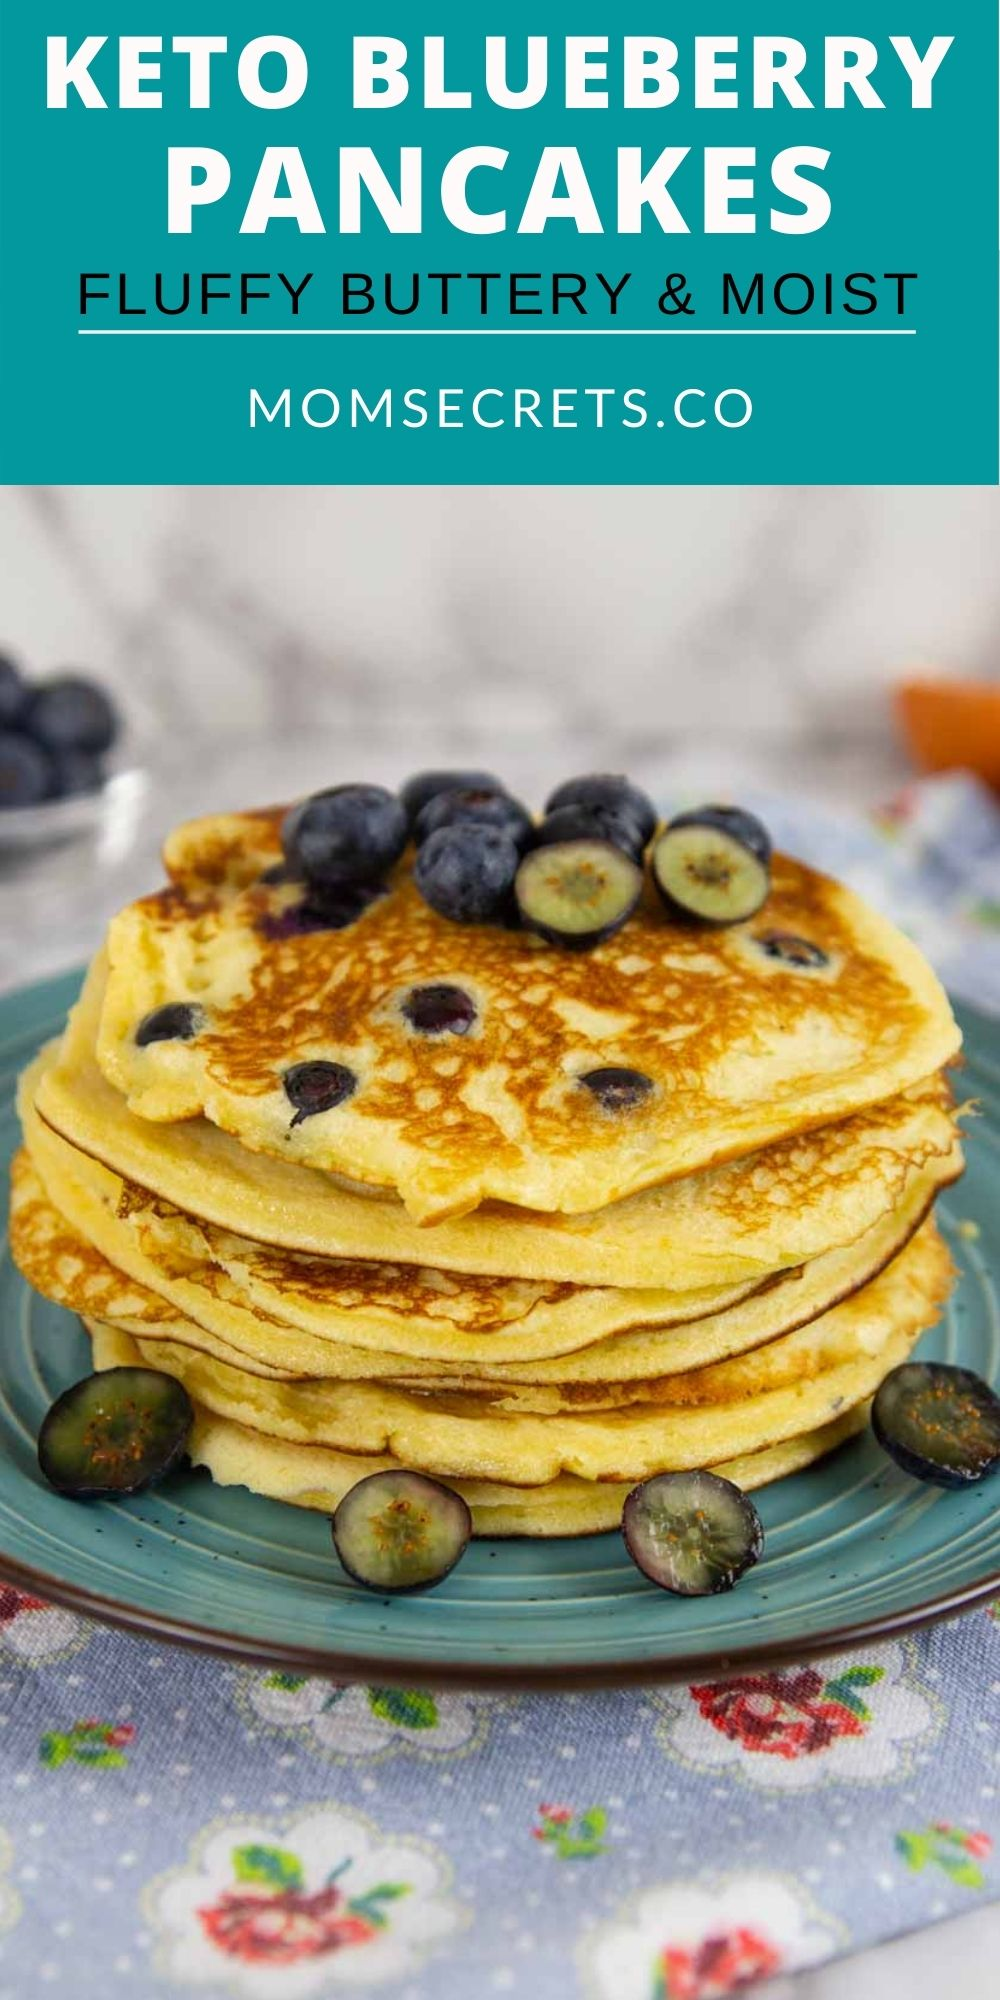 These Keto Blueberry Pancakes are buttery, fluffy, and thick. They're made with almond flour and each pancake is studded with juicy blueberries. #ketobreakfast #healthypancakes #pancakes #blueberrypancakes #ketorecipes